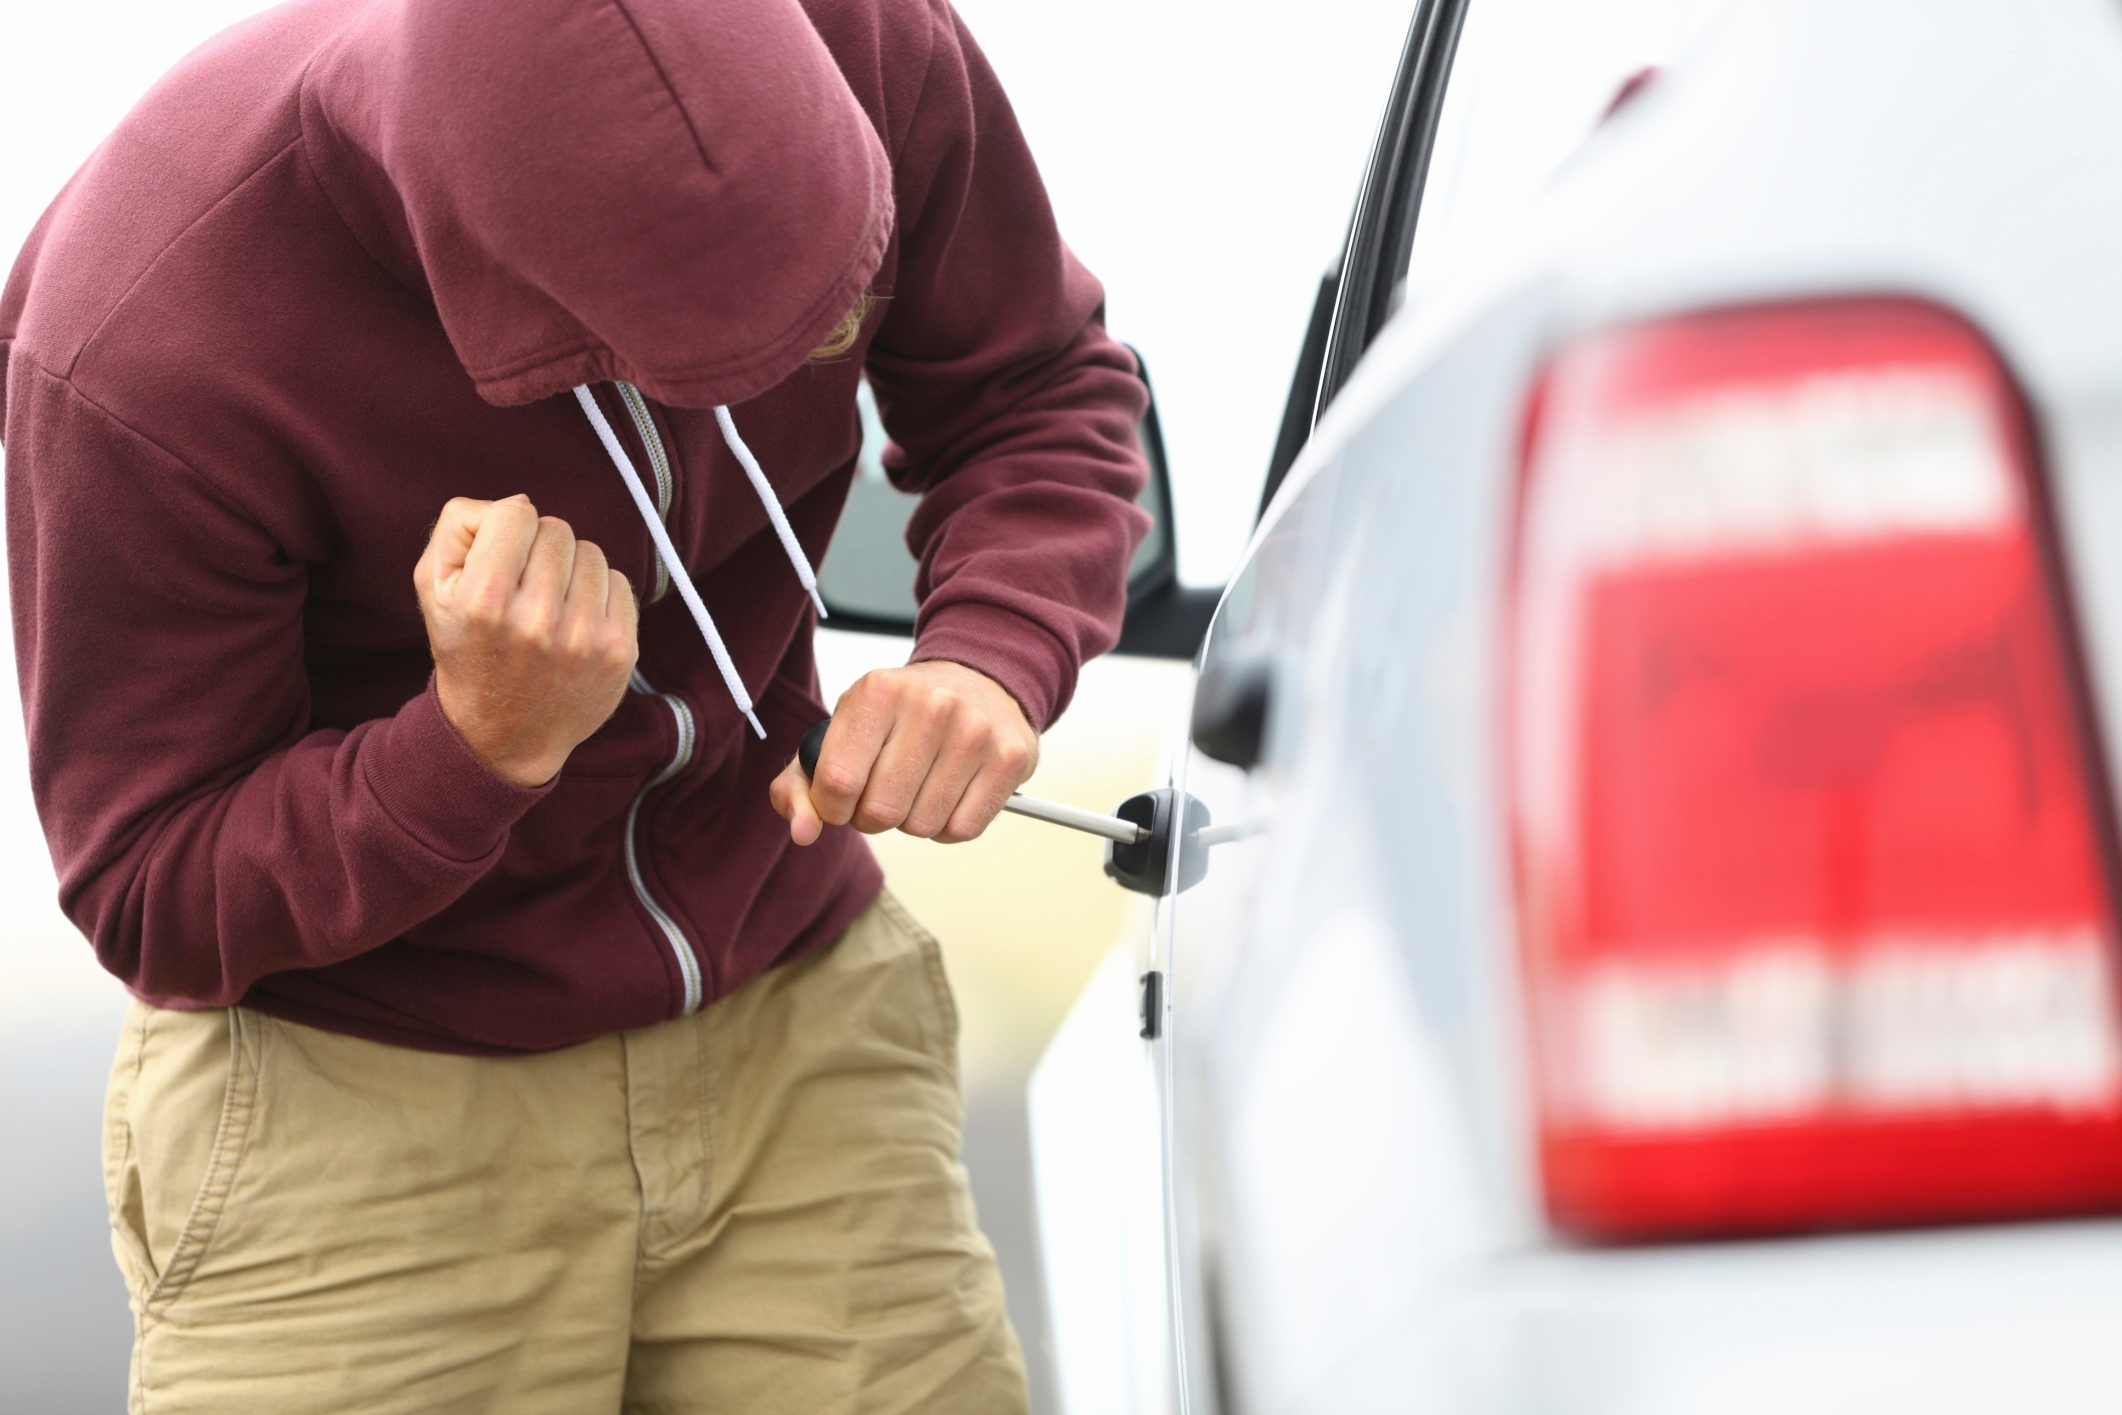 Police step-up patrols after 'sudden rise' of car thefts